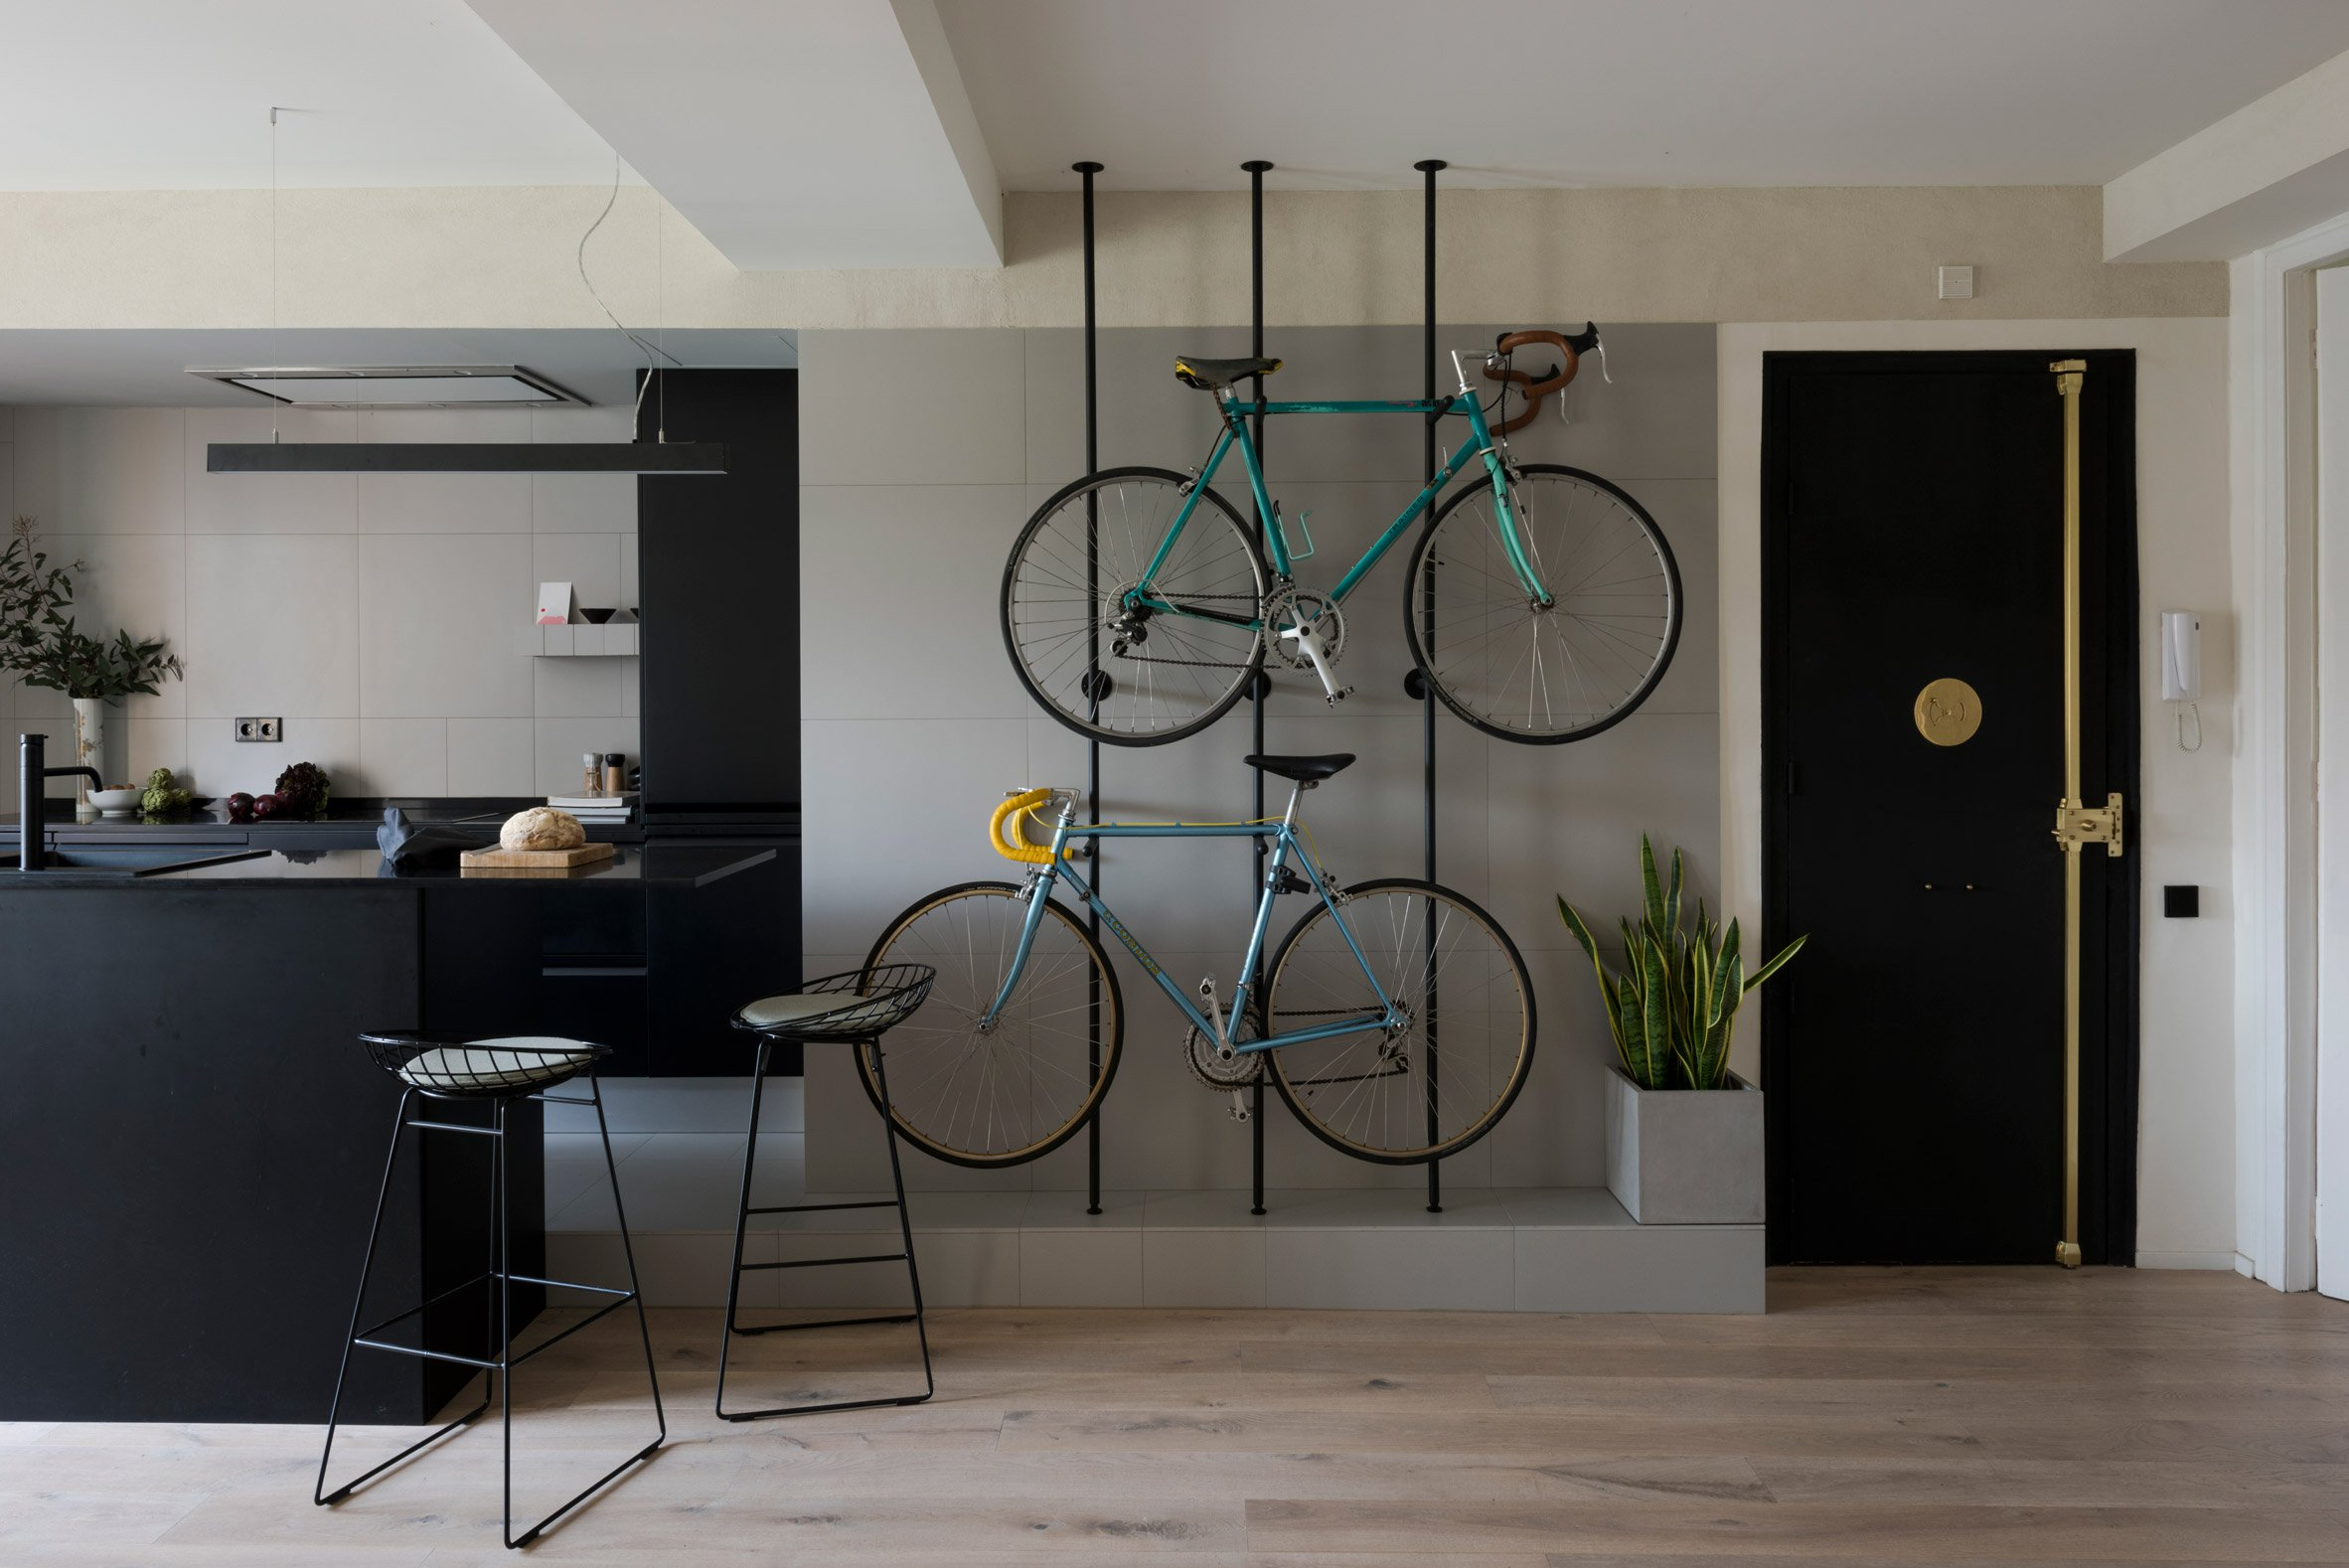 1. Home reno by Colombo and Serboli in Barcelona - Apartment renovation in Barcelona features bespoke bicycles storage